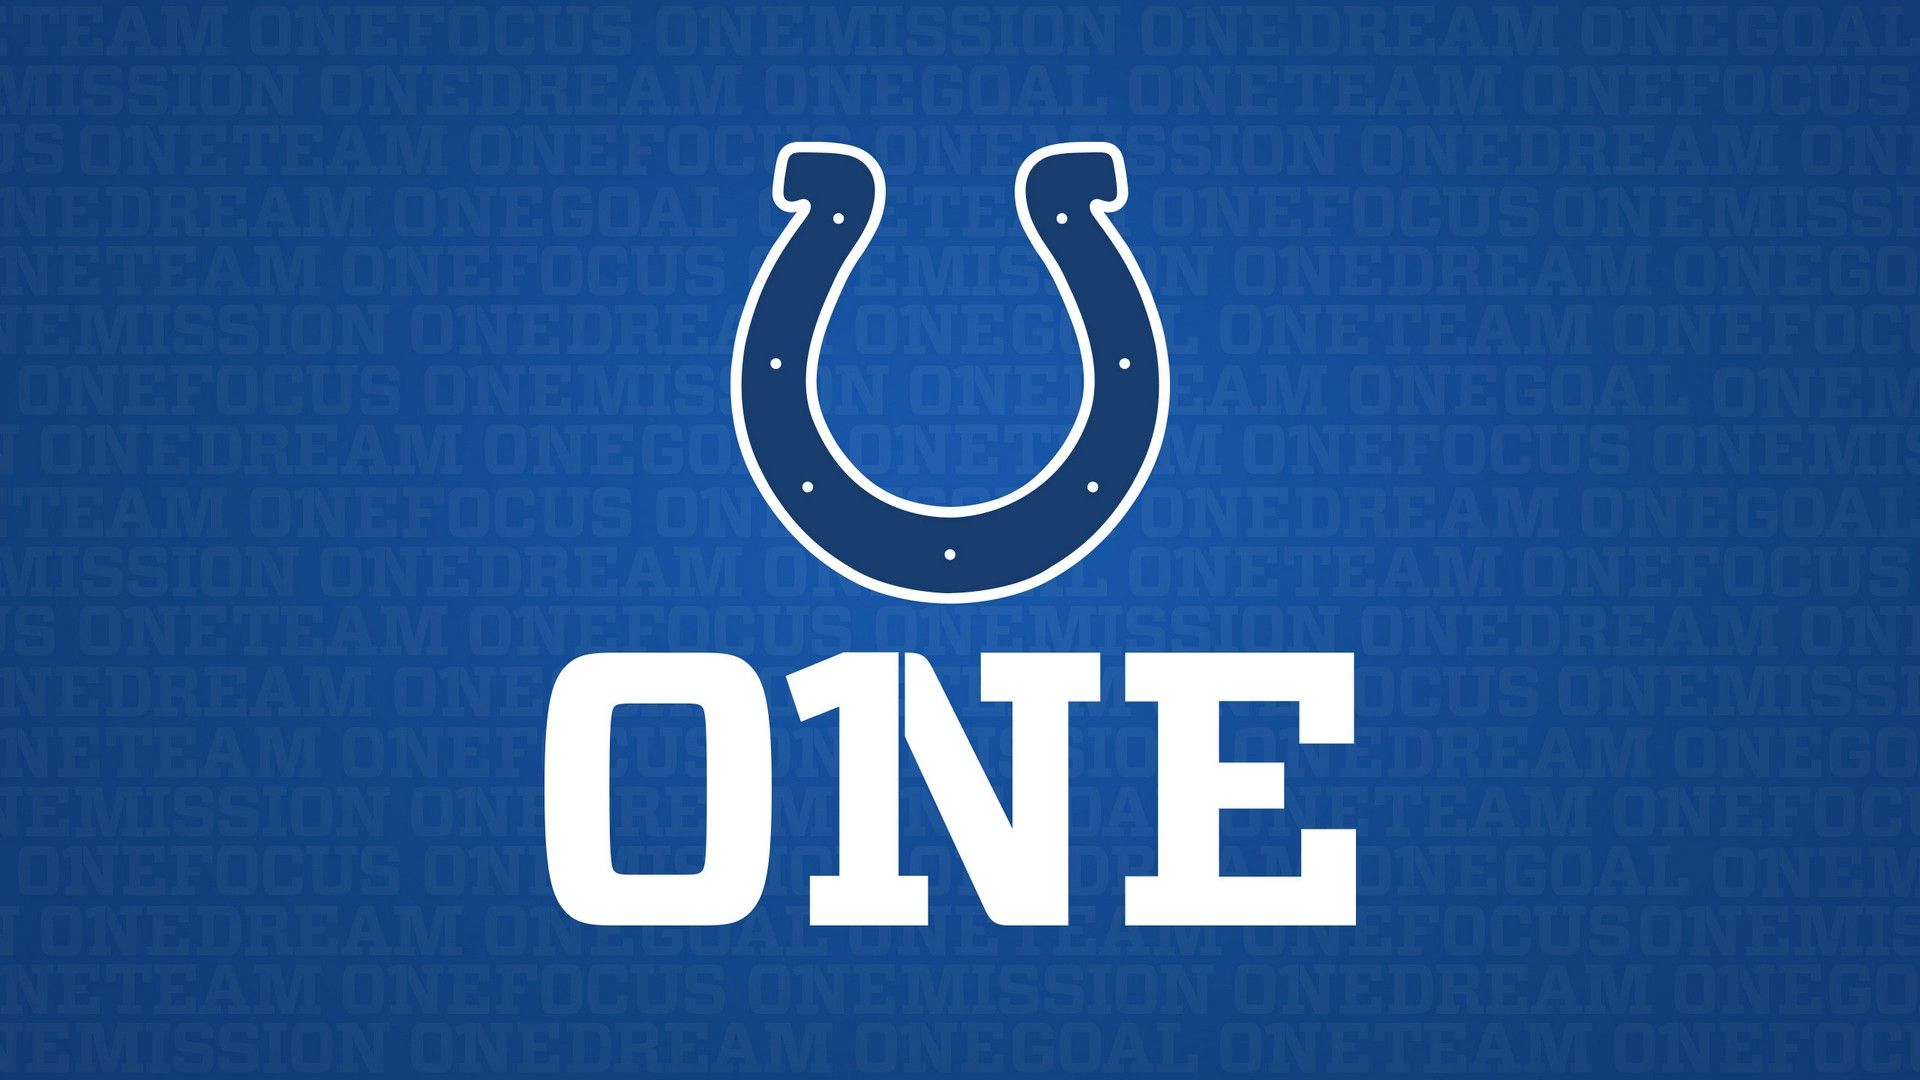 Indianapolis Colts Desktop Wallpapers Wallpapers Football 1920x1080